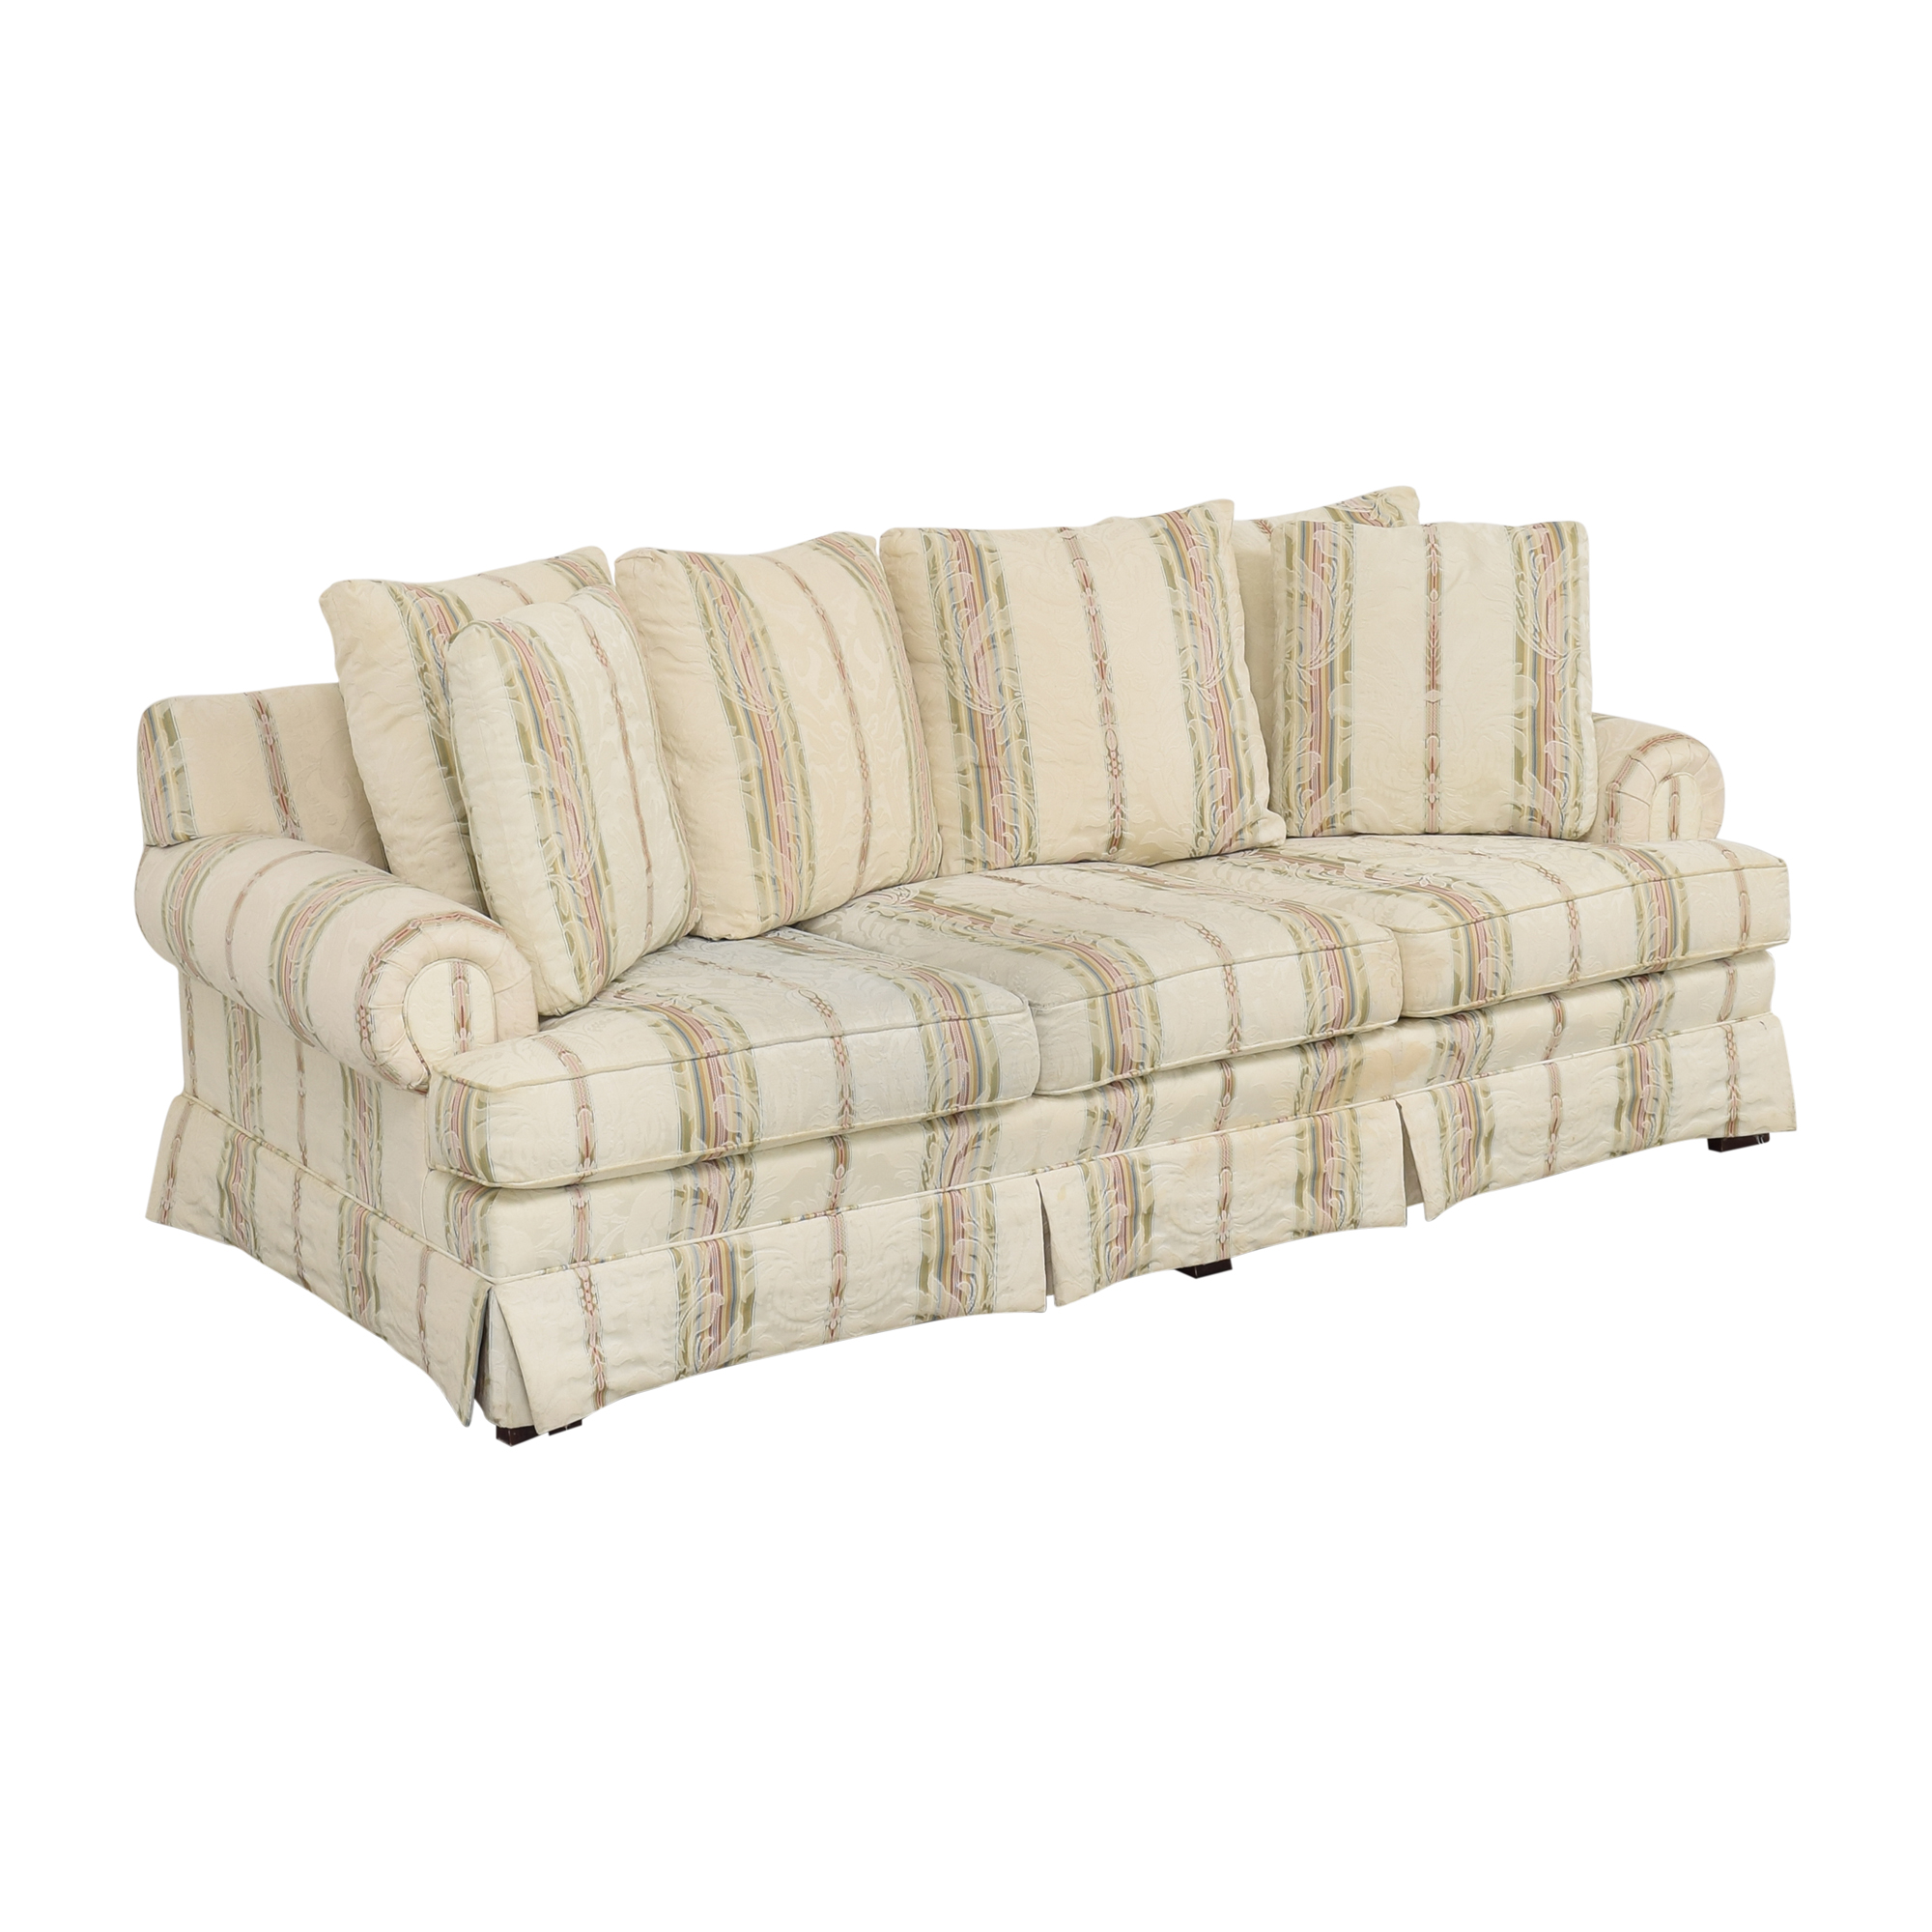 Broyhill Furniture Broyhill Furniture Layered Pillow Sofa coupon